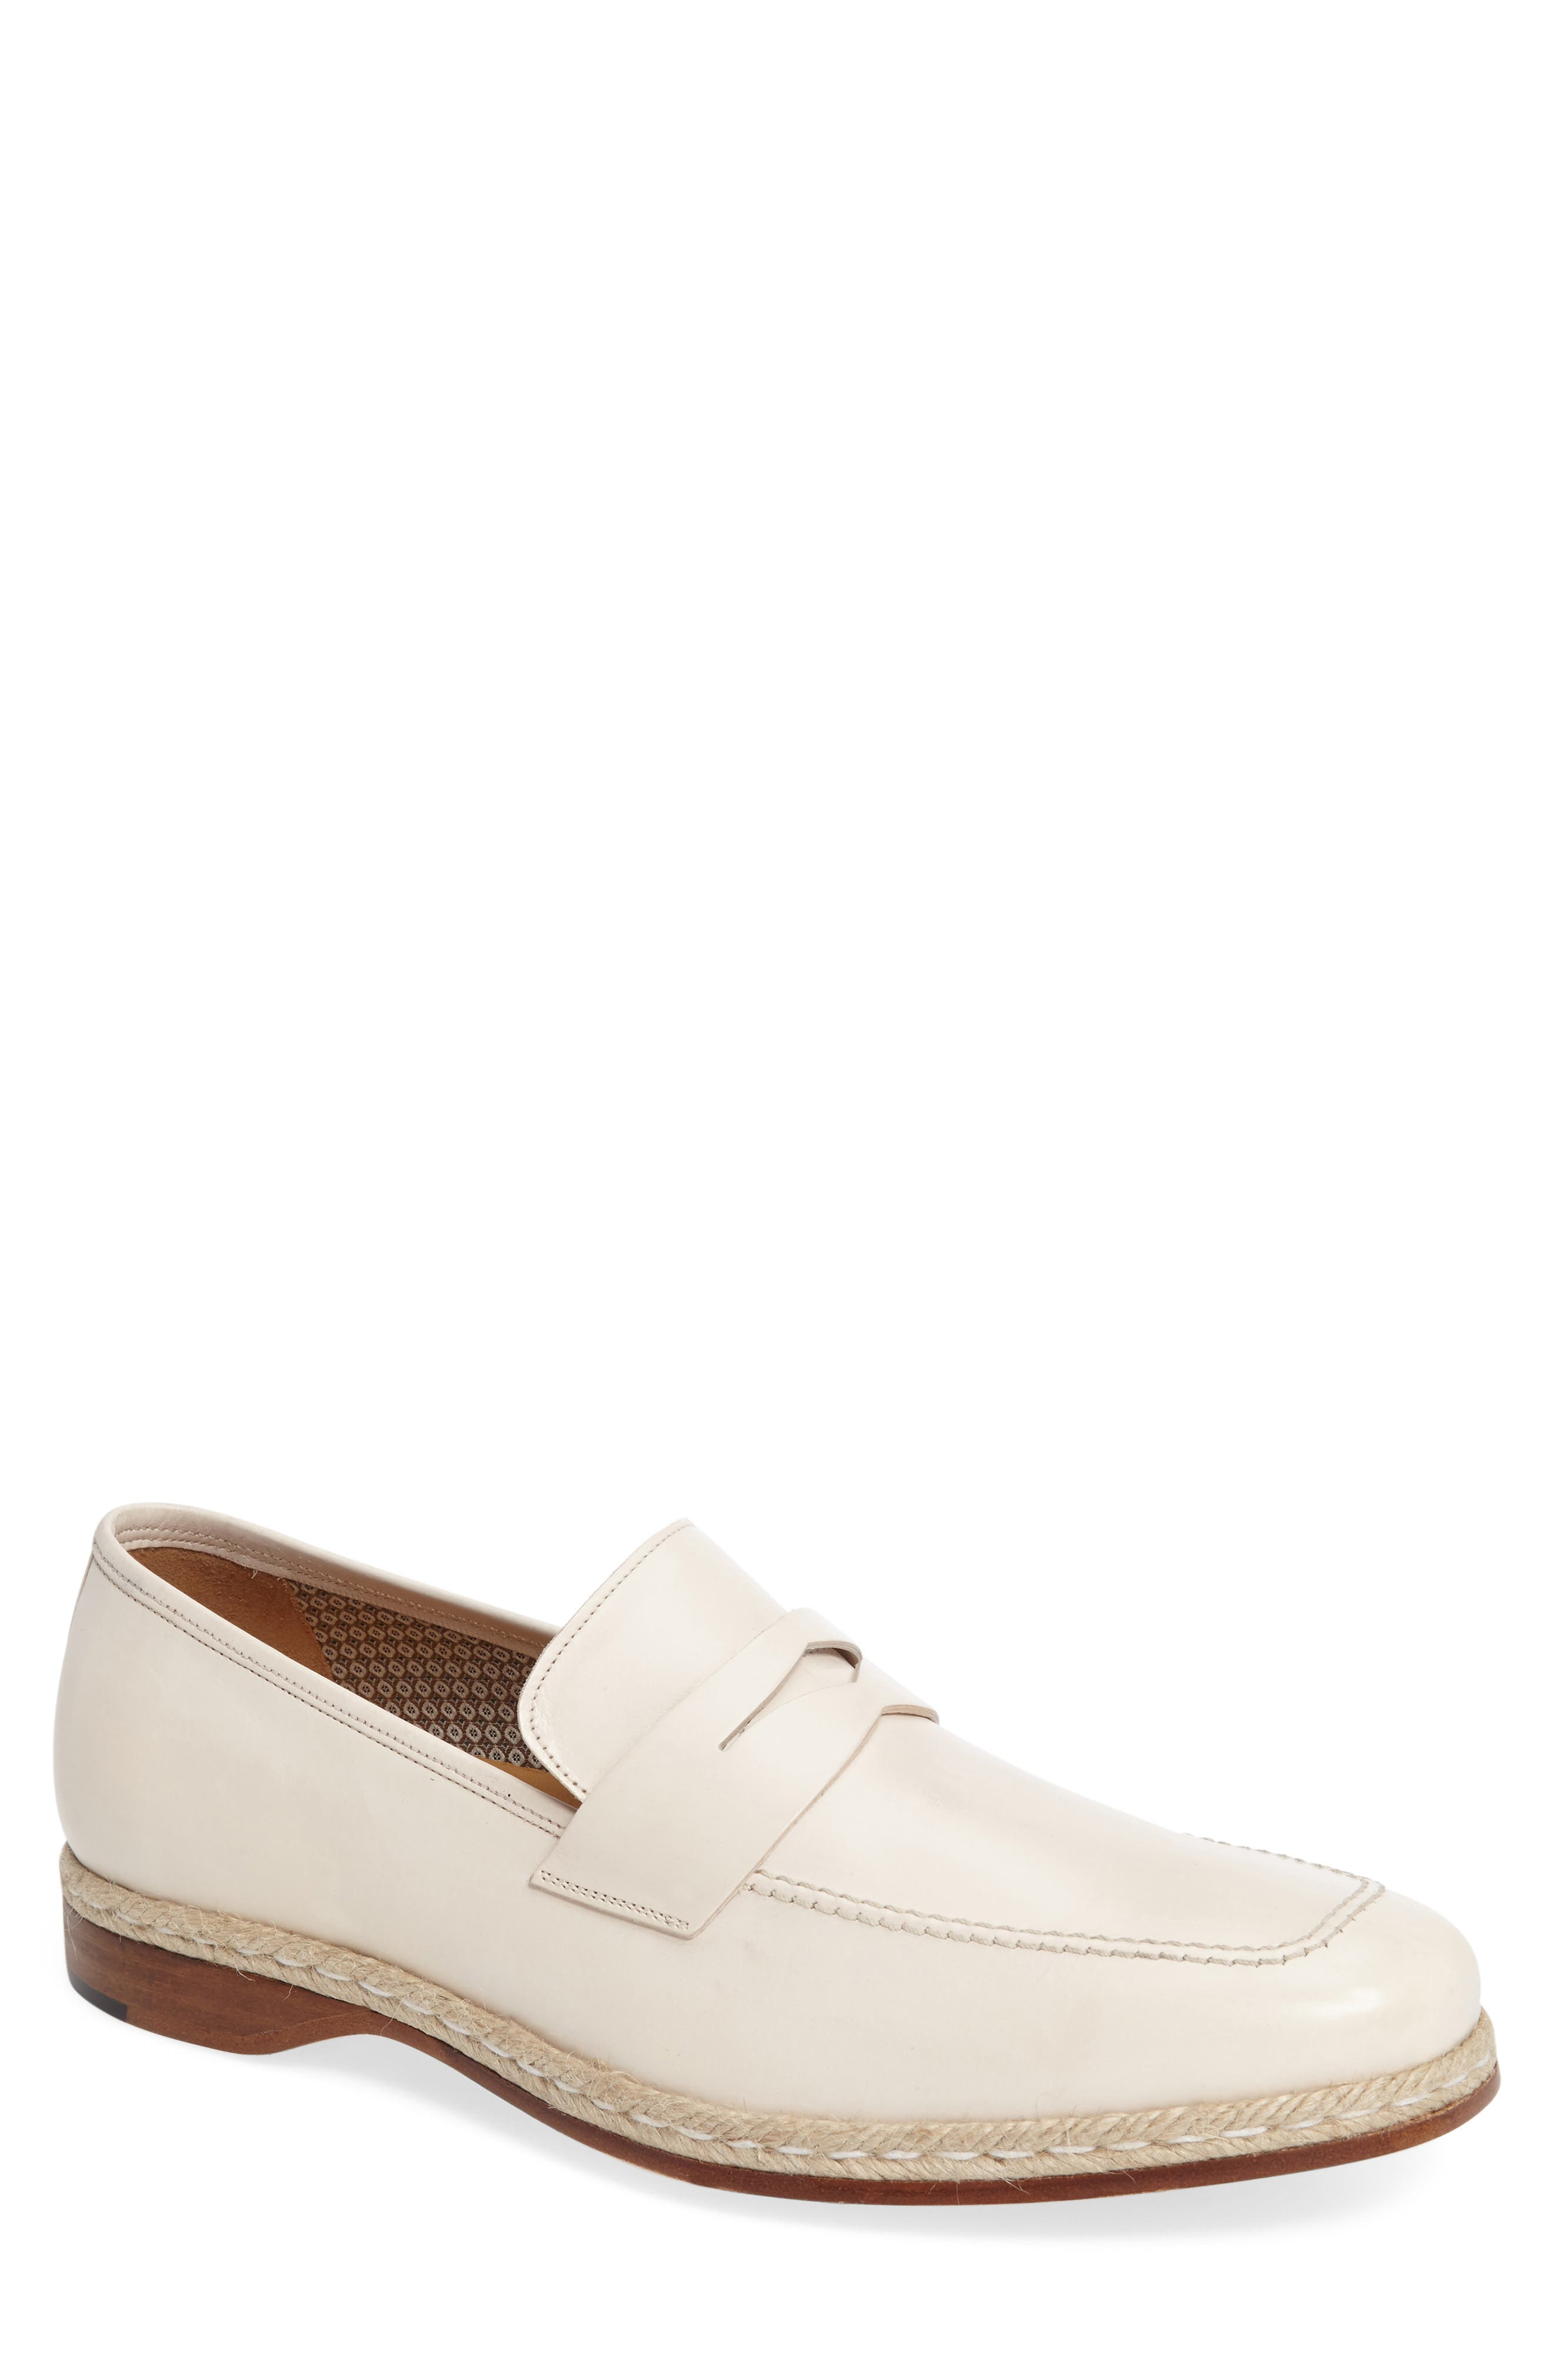 Battani Penny Loafer,                             Main thumbnail 1, color,                             BONE LEATHER